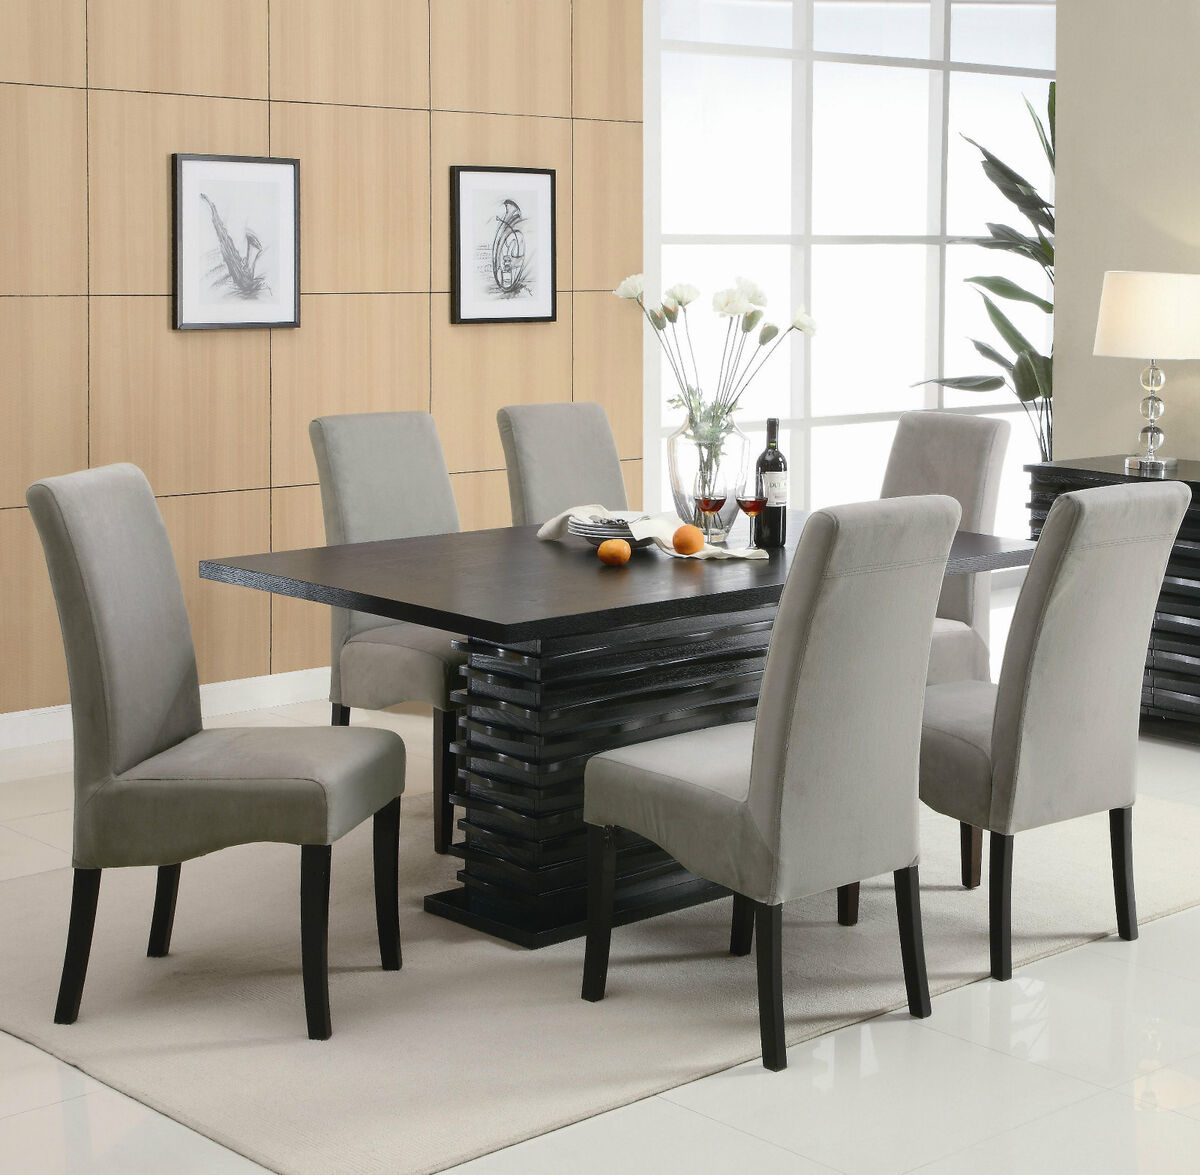 Dining table furniture contemporary dining table chairs for Modern dining furniture